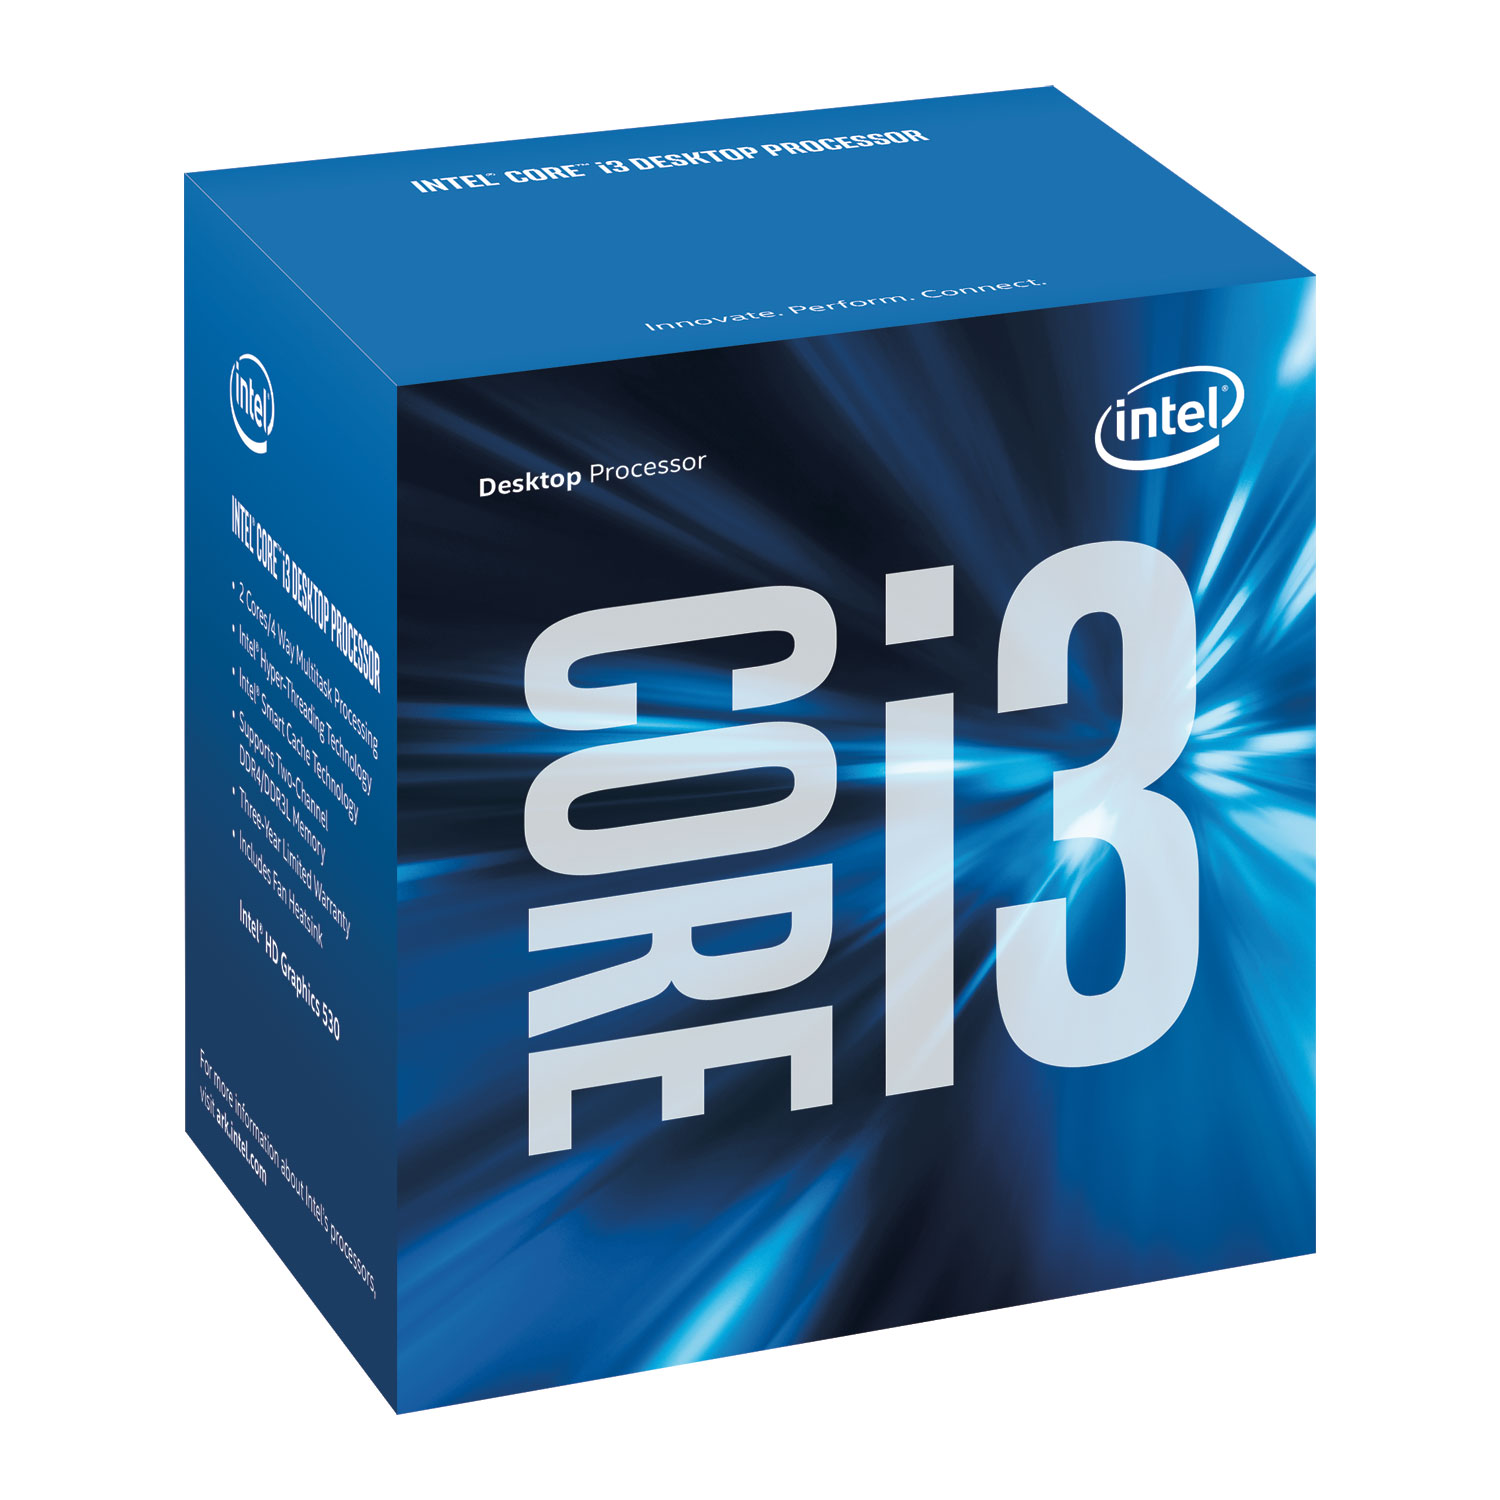 bo-vi-xu-ly-intel-core-i3--6100--3-7ghz--sk1151--4mb